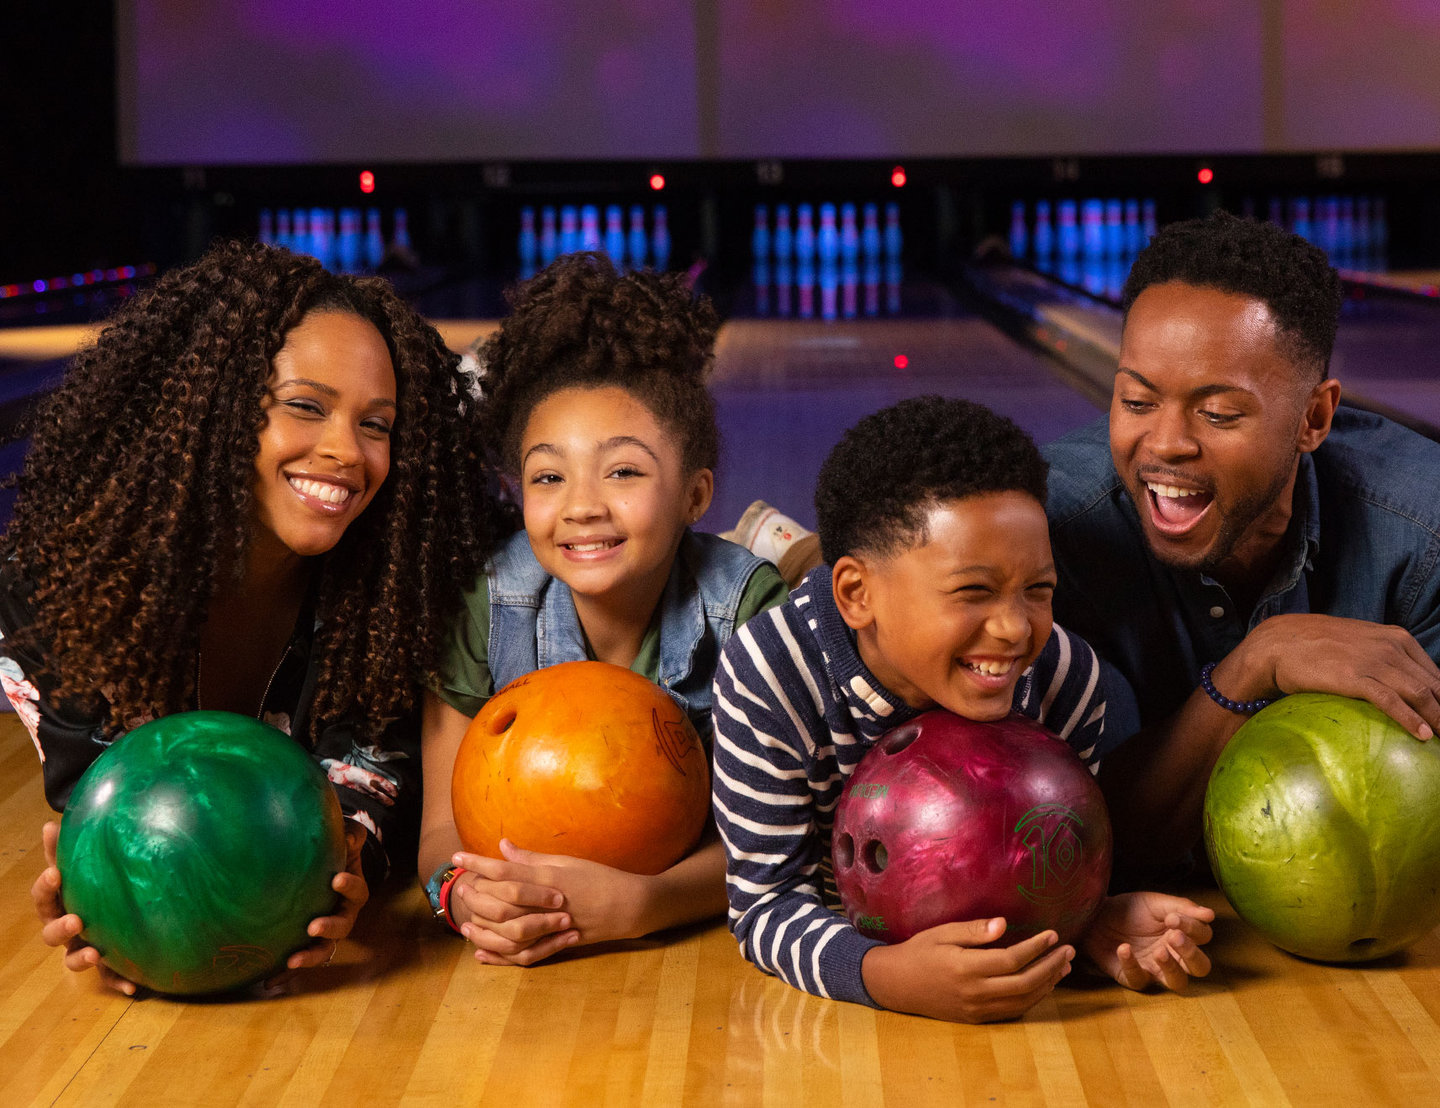 National Bowling Day Discounts And More Bowling Specials Enjoying Rva And All It Has To Offer